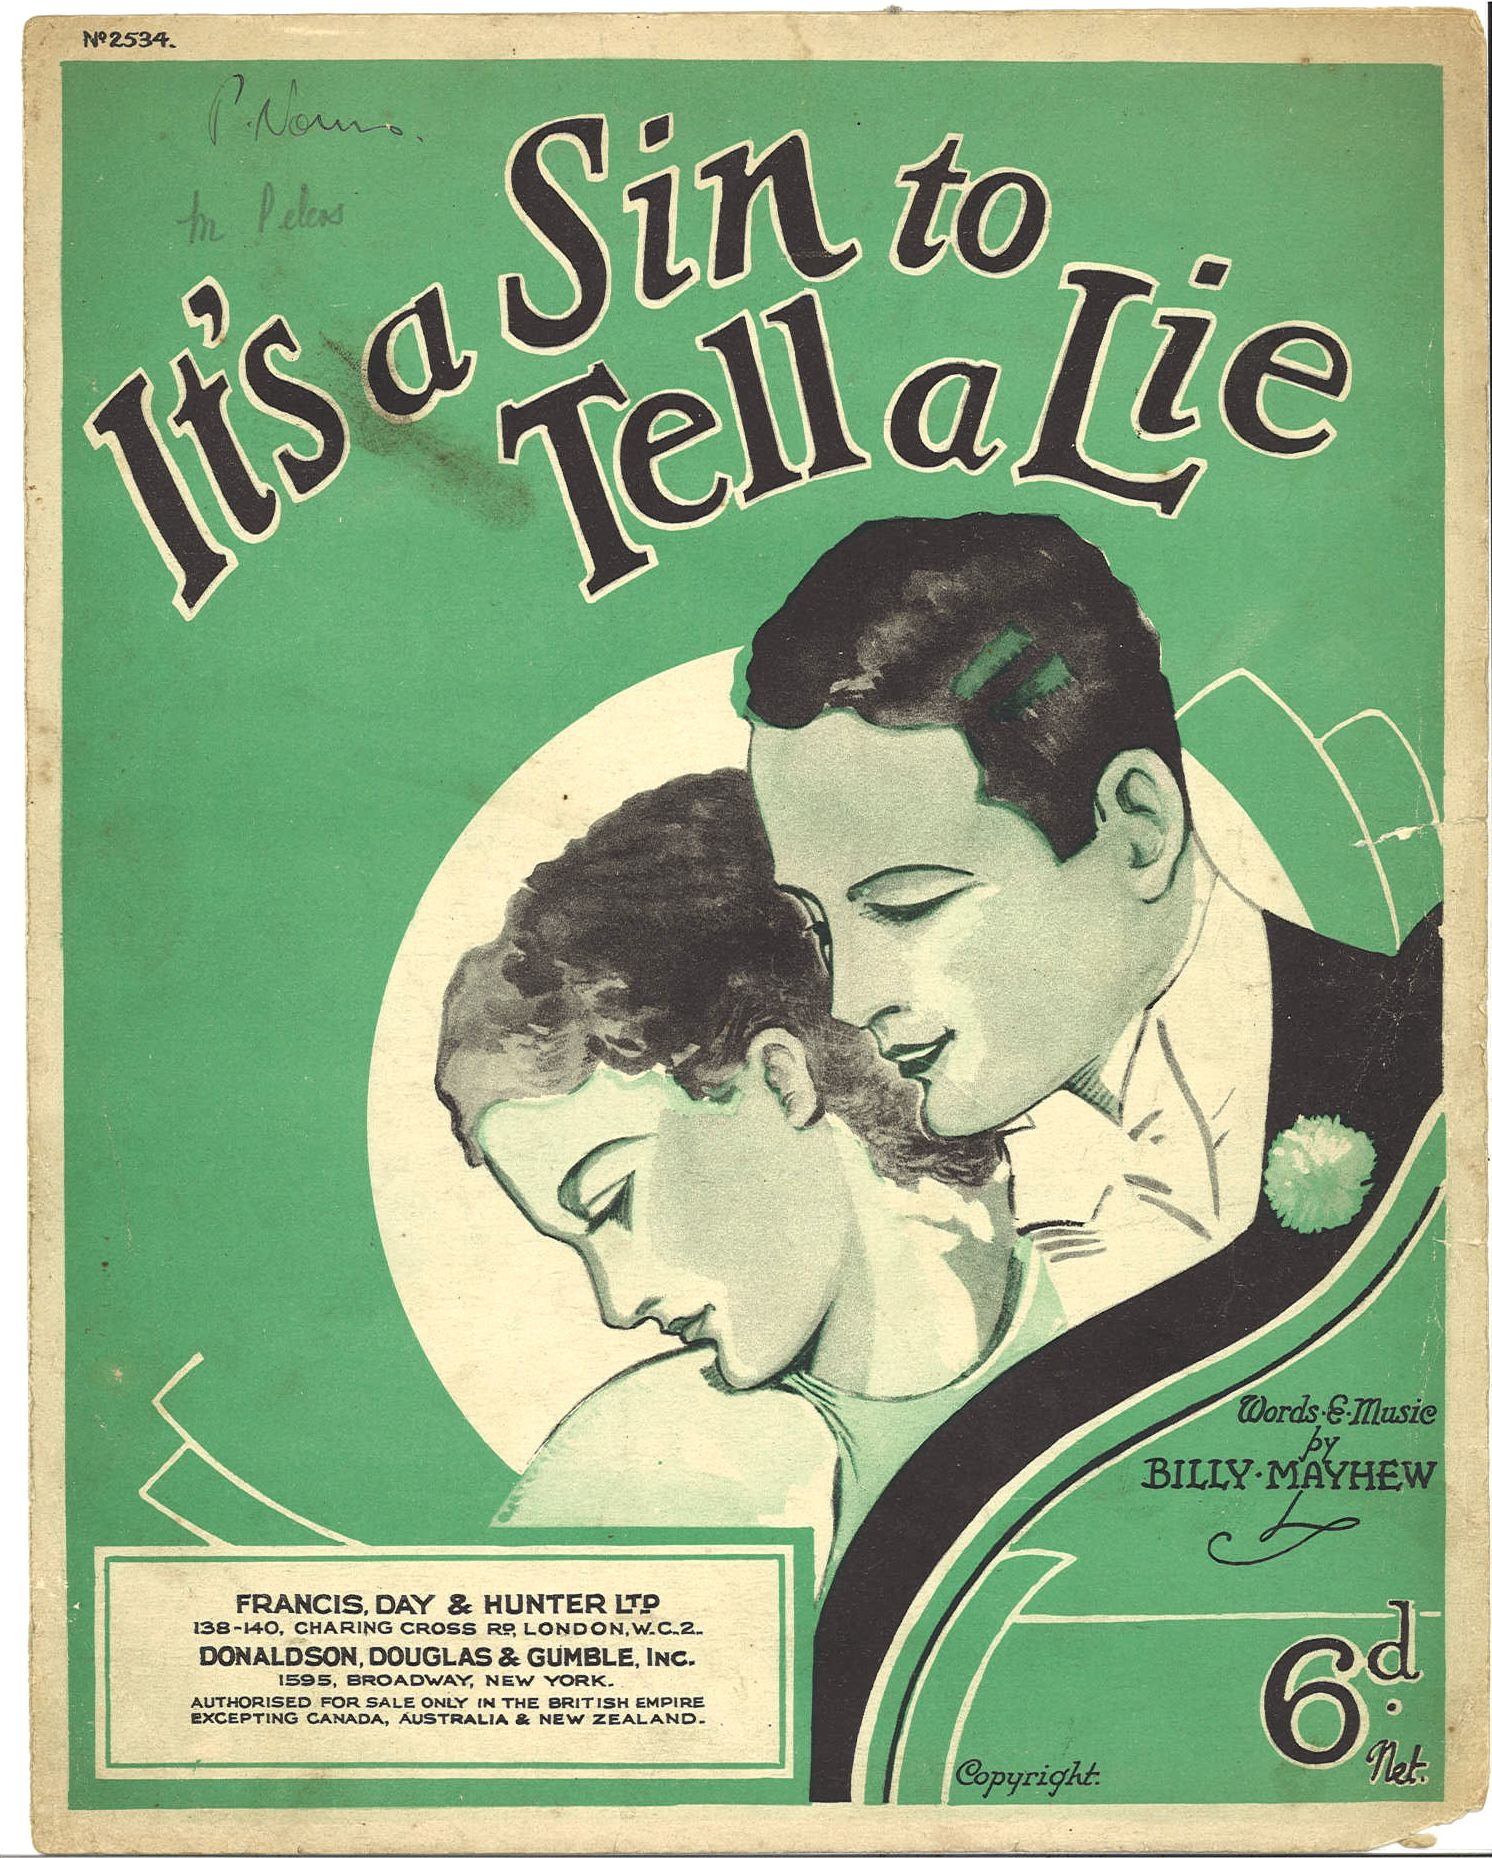 IT'S A SIN TO TELL A LIE - BILLY MAYHEW - SPARTITO-SHEET MUSIC